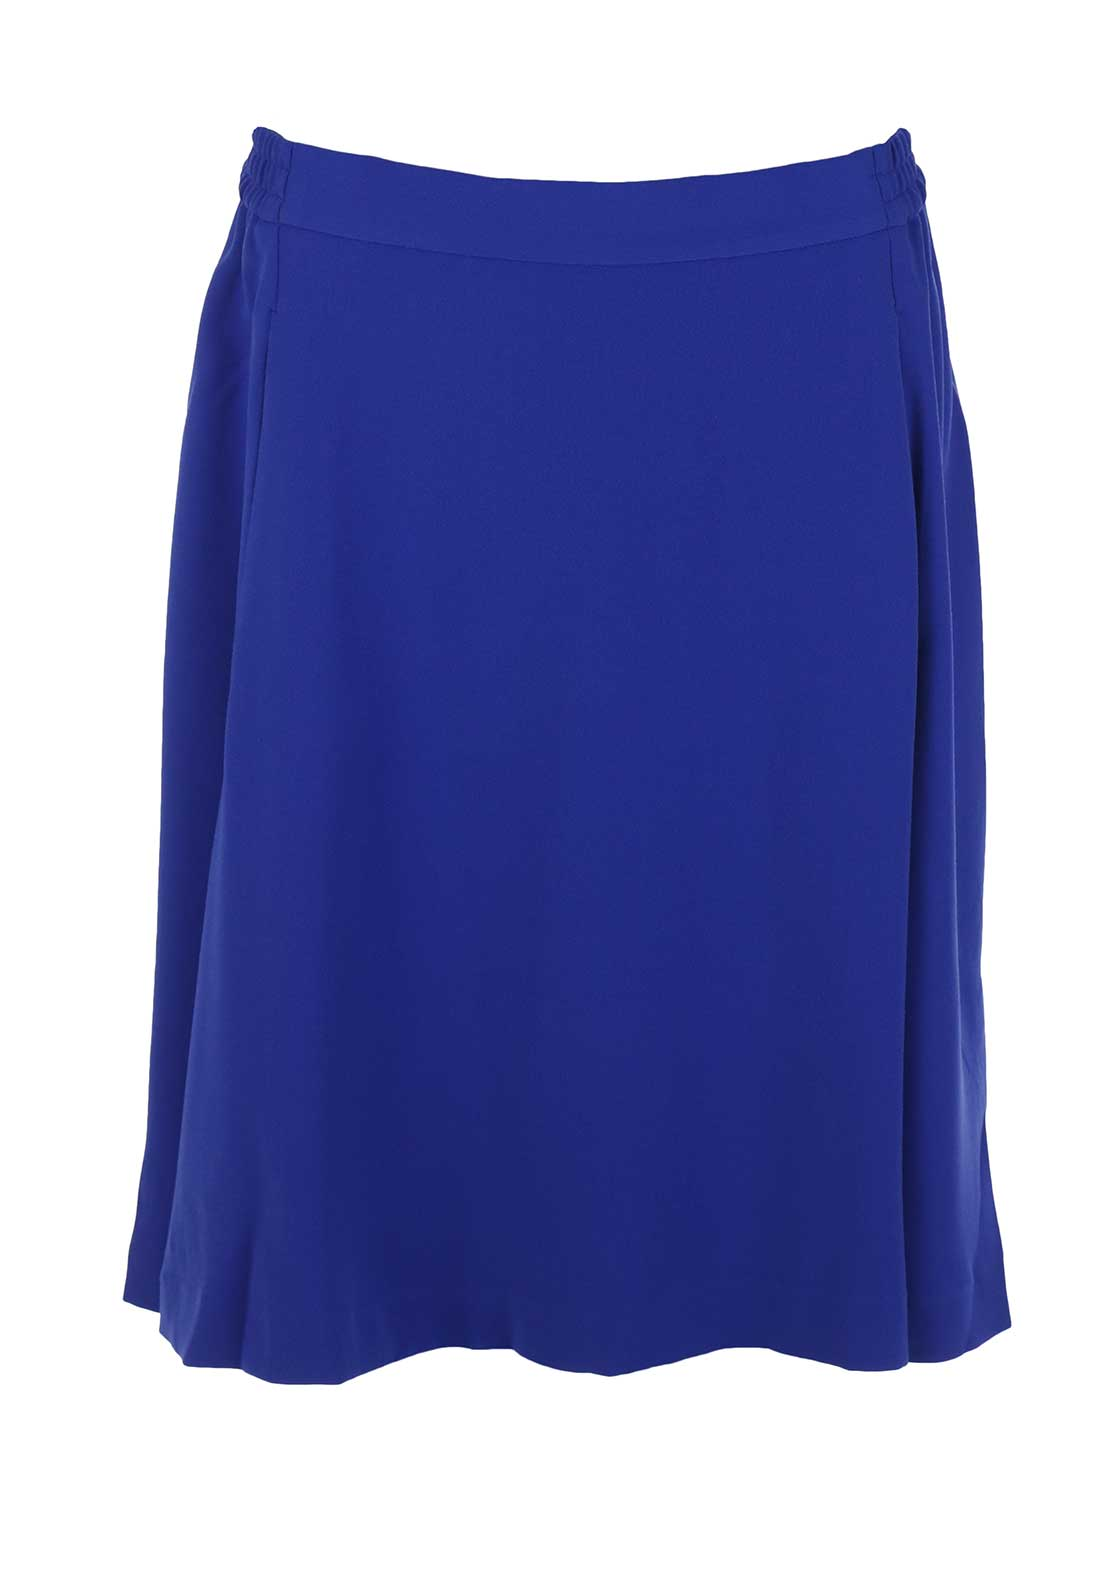 Inwear Fit and Flared Skater Skirt, Blue